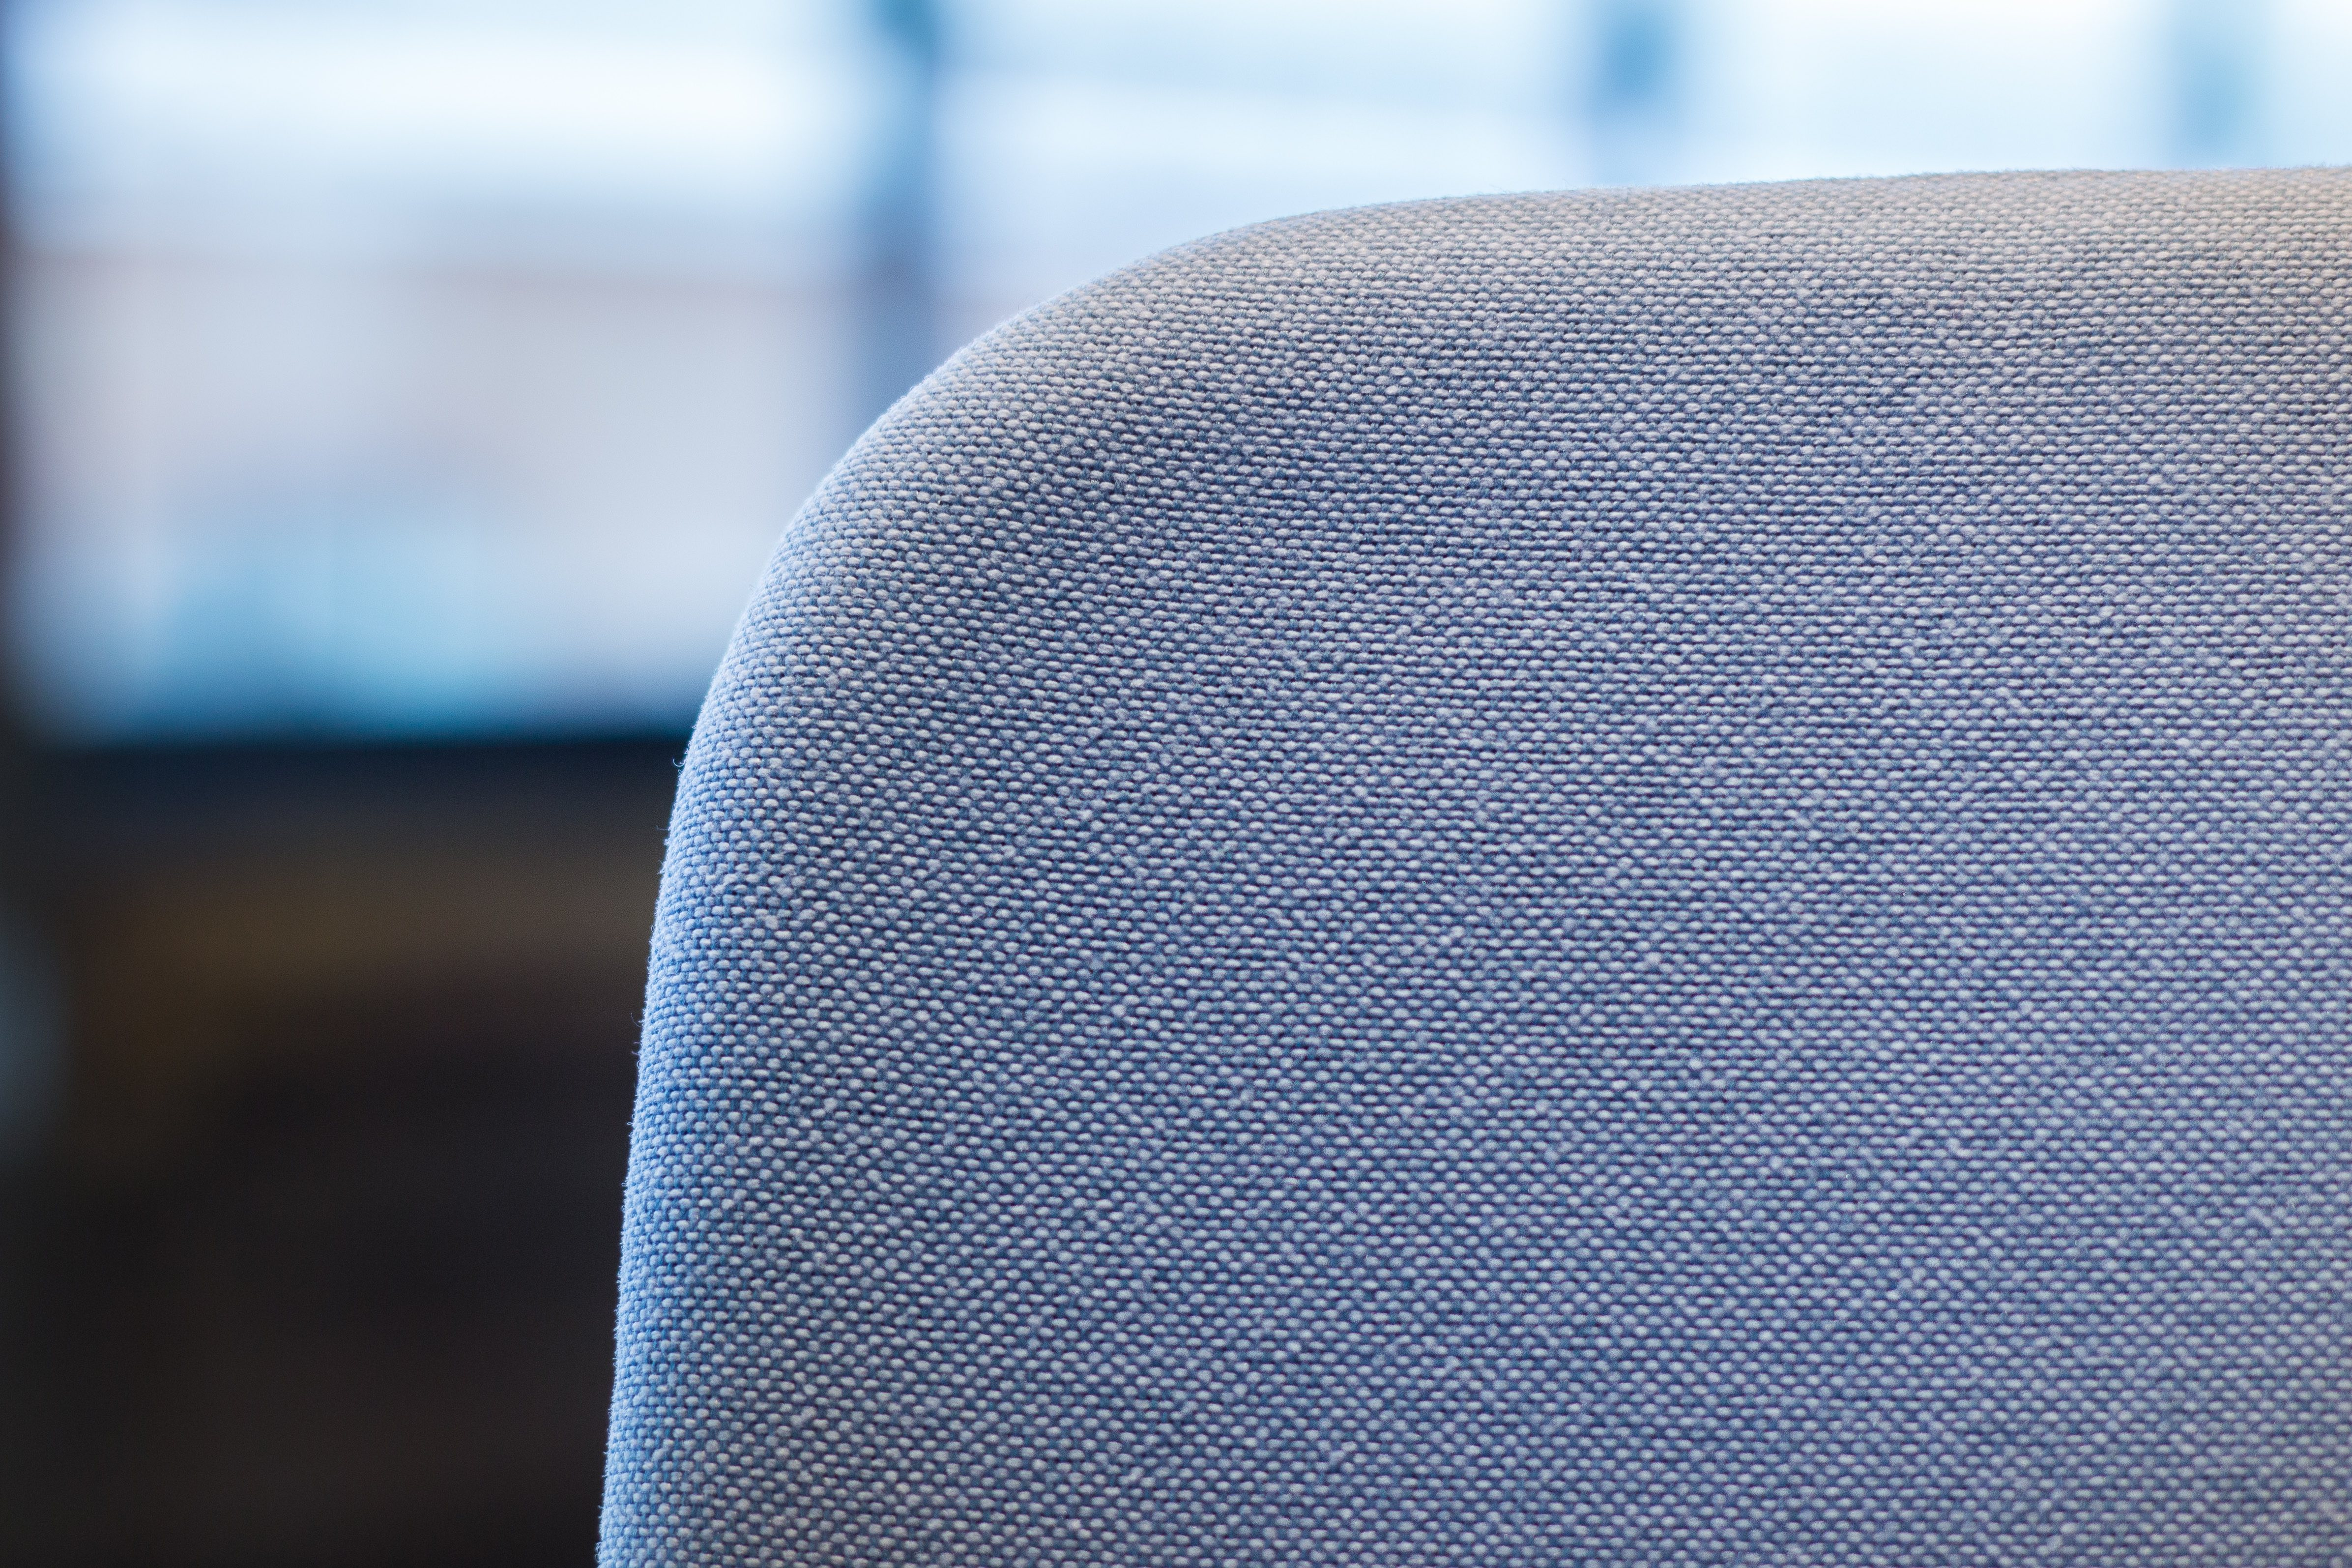 Review: Living with Vitra's Pacific Chair, Jony Ive's choice